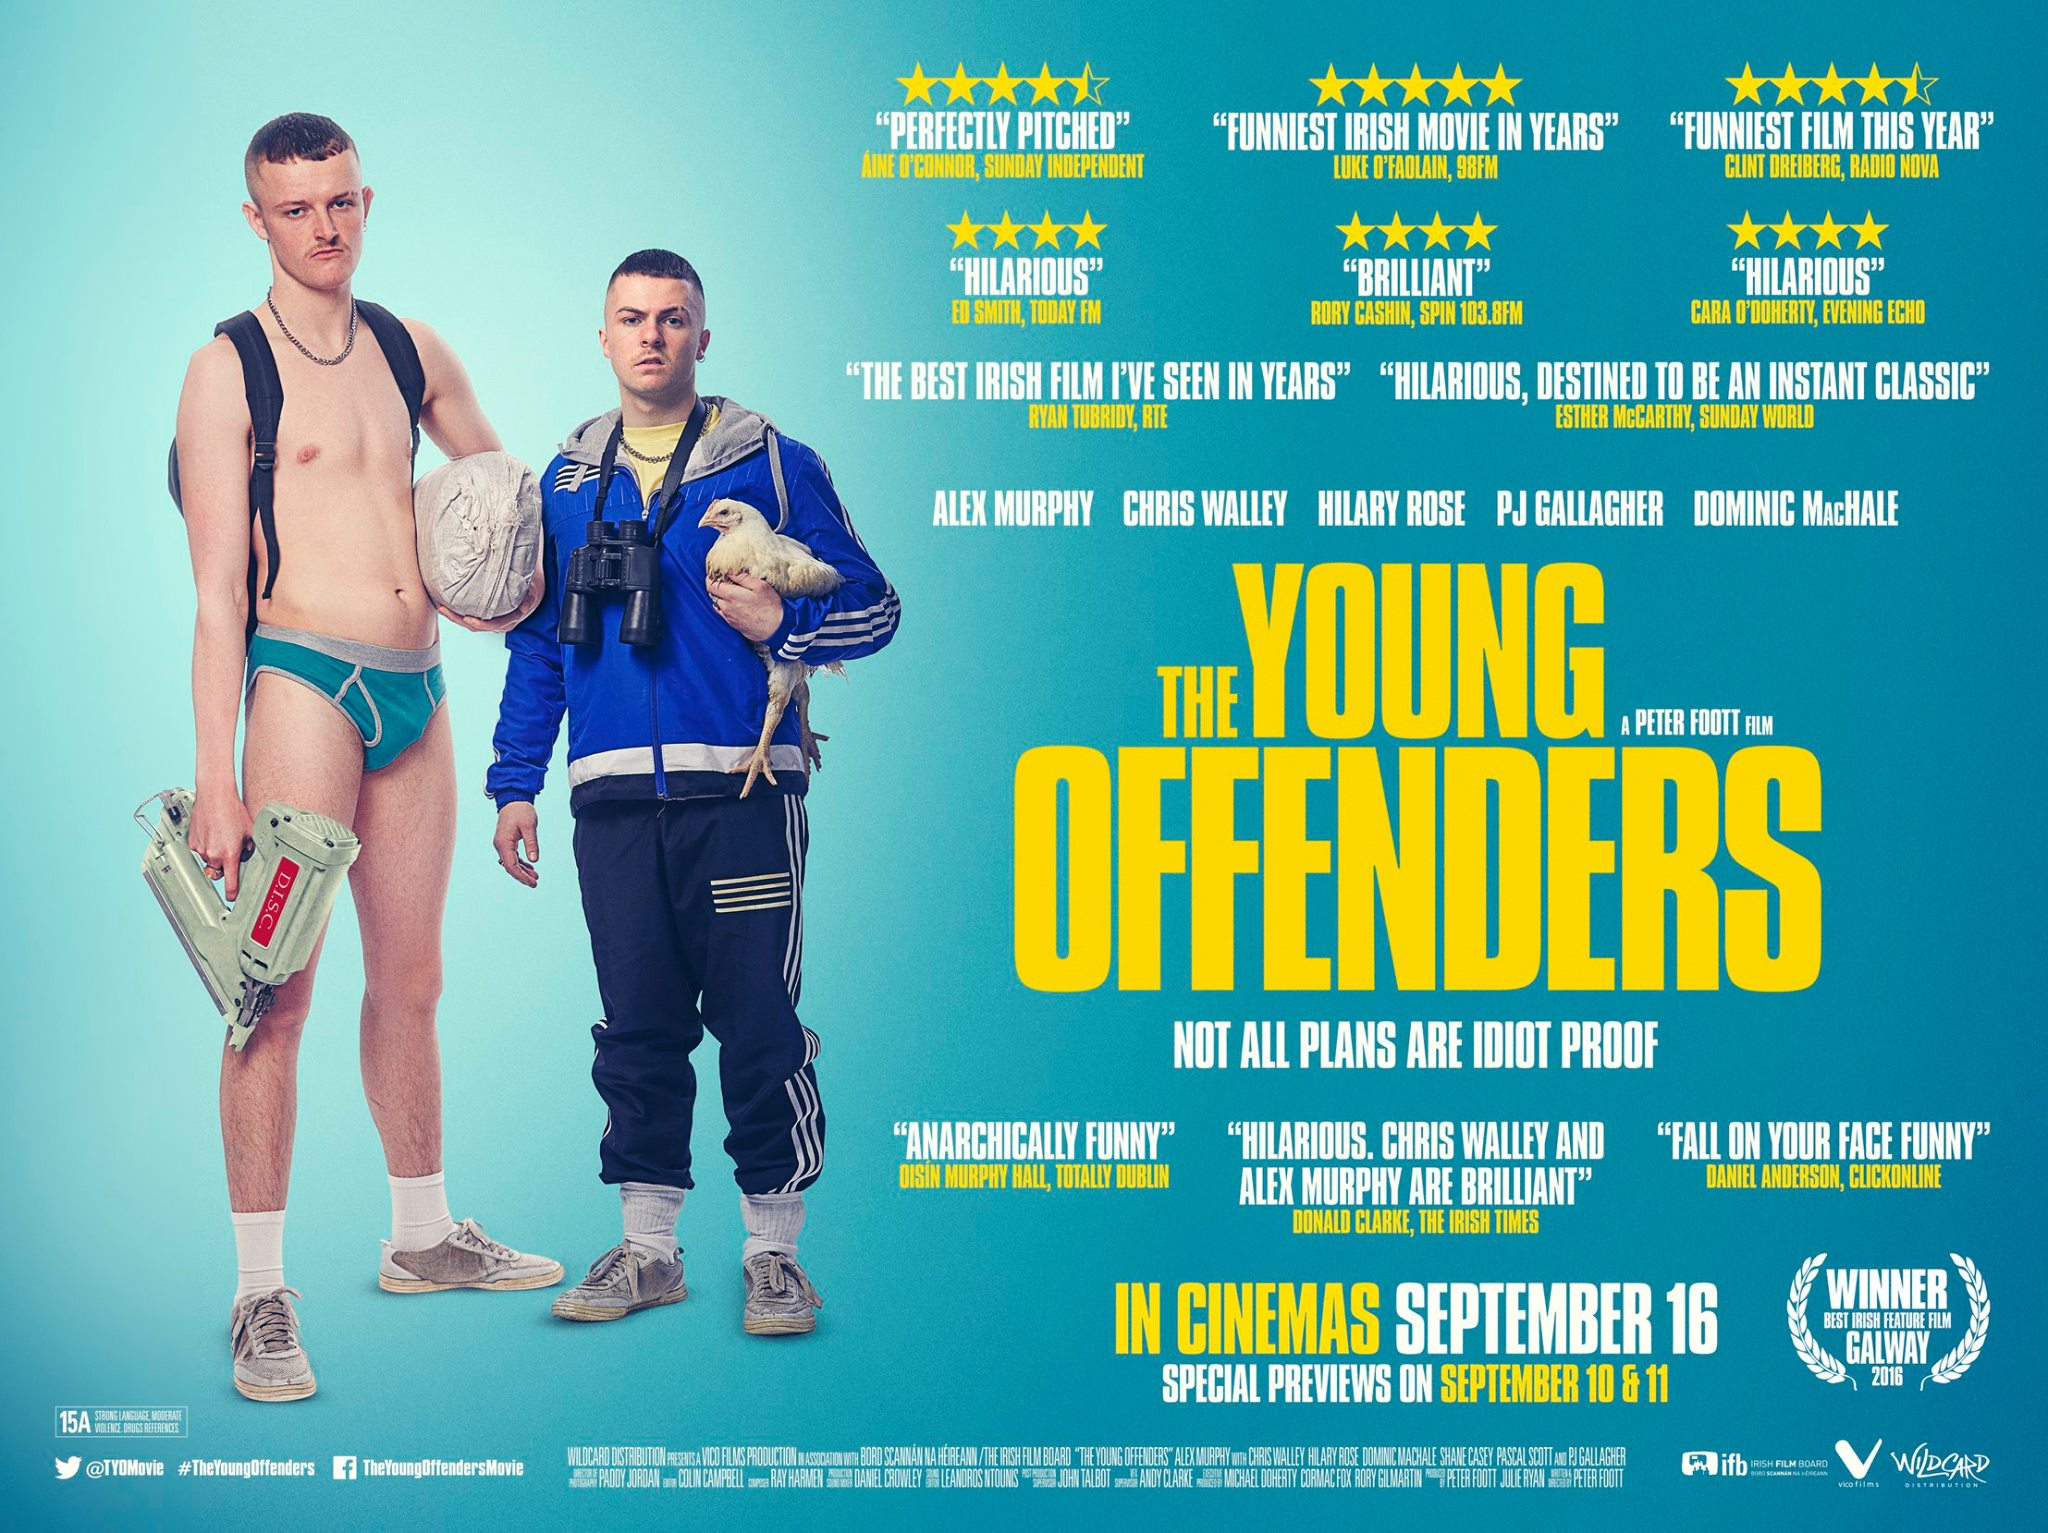 the young offenders film poster design